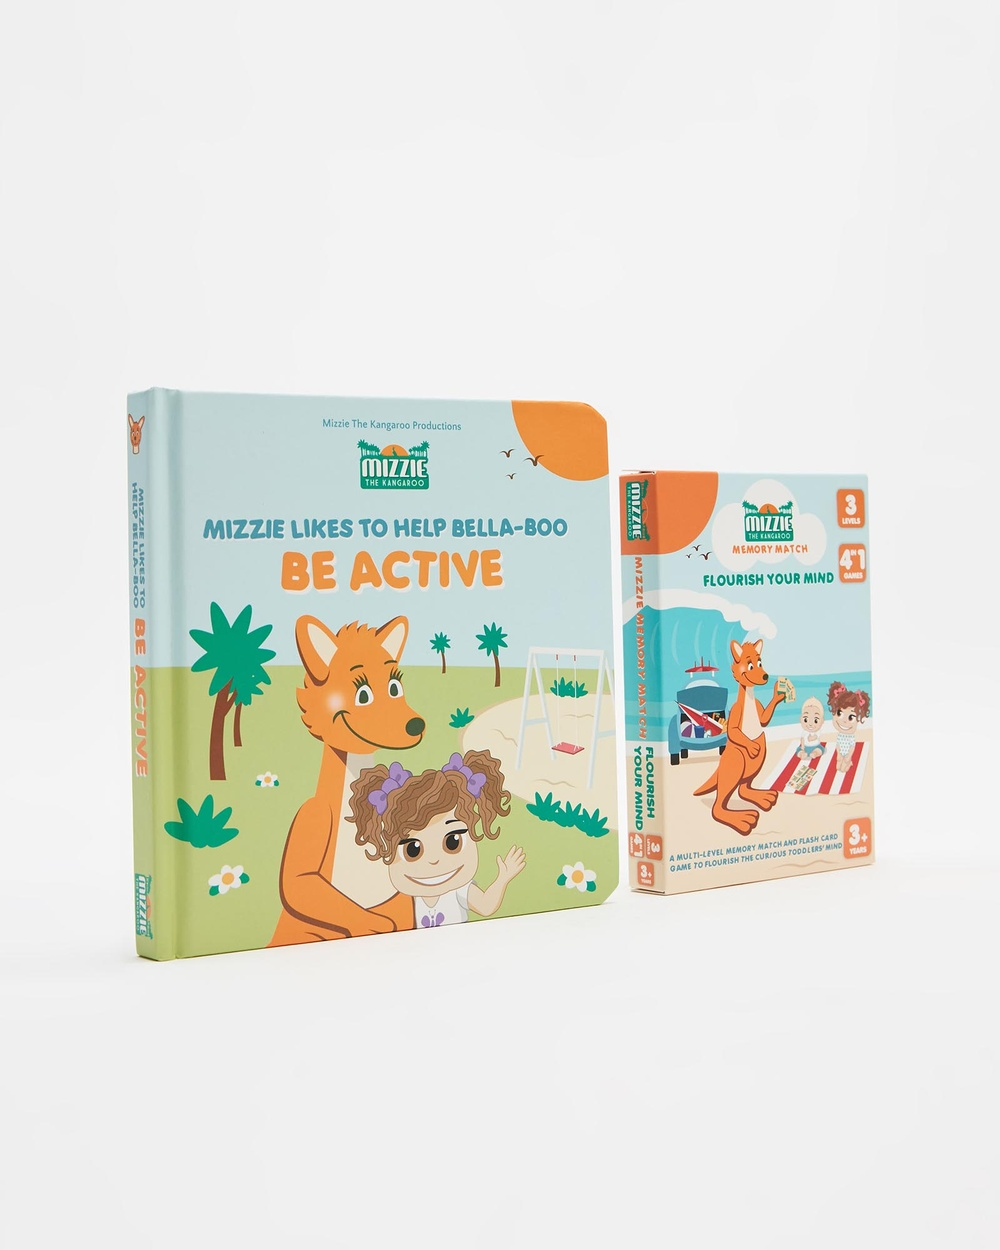 Mizzie The Kangaroo 'Look & Learn' Toddler Gift Set Be Active All toys Multi All toys Australia